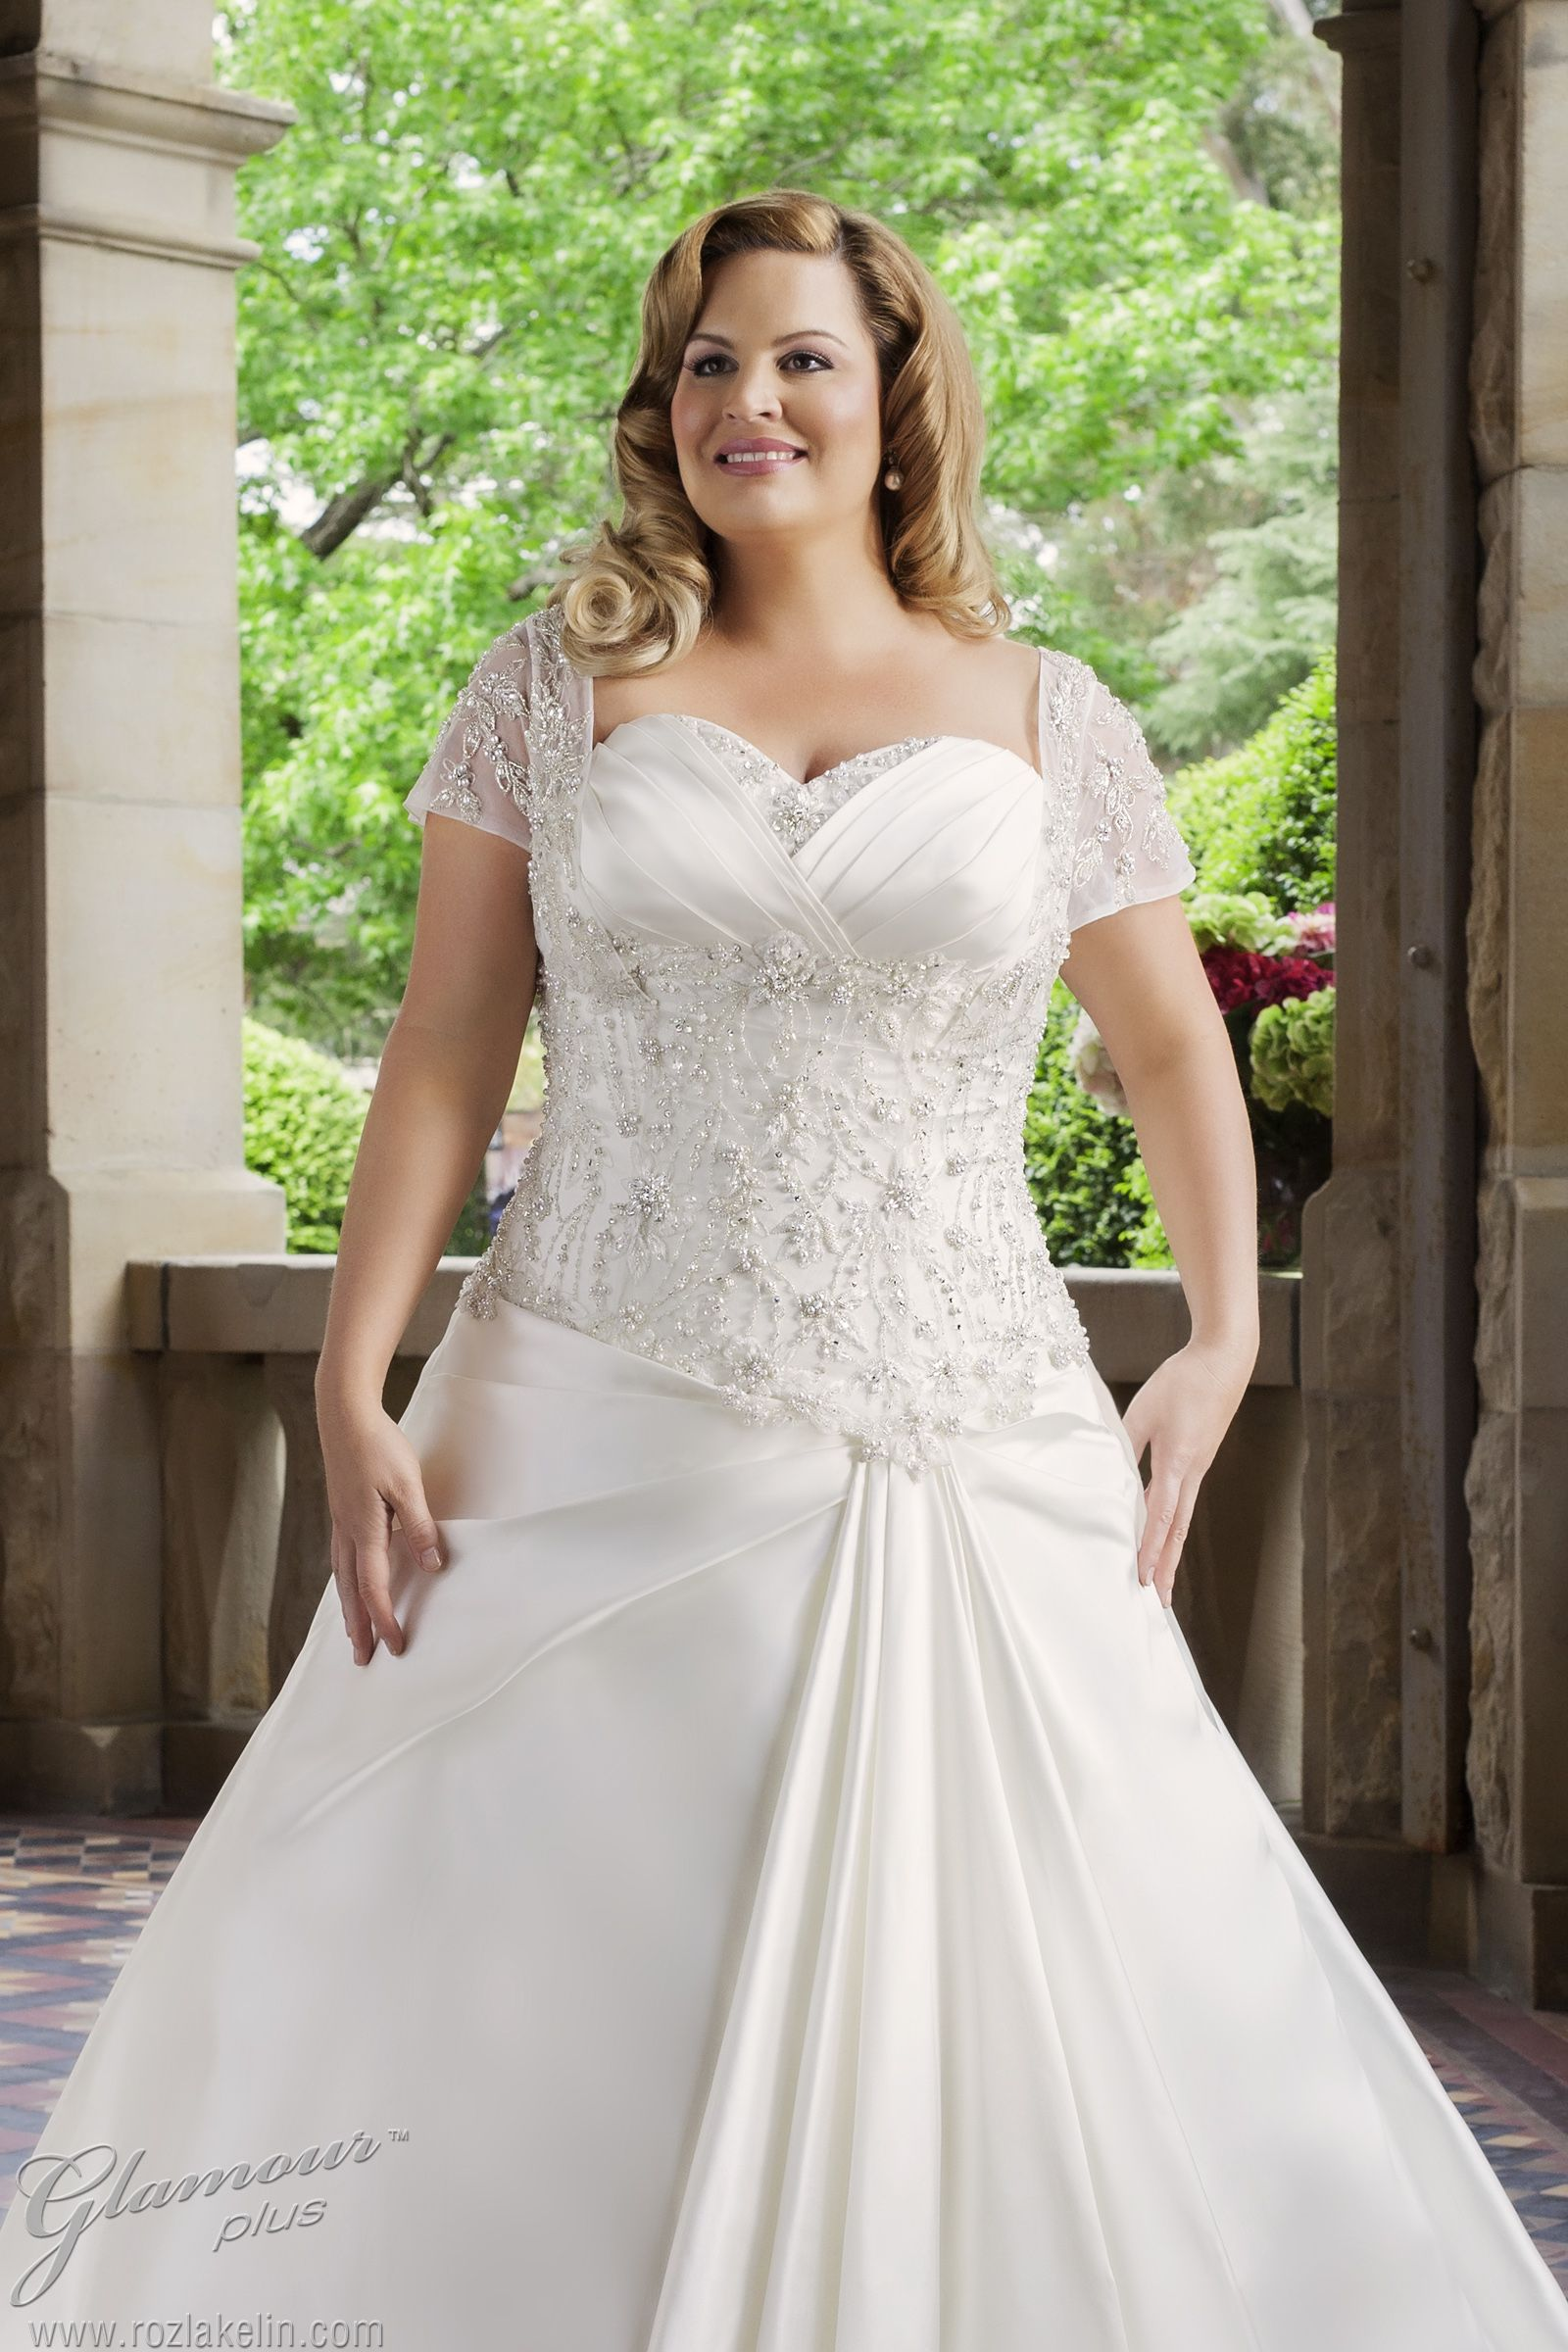 Glamour Plus Size Wedding Dress Roz La Kelin